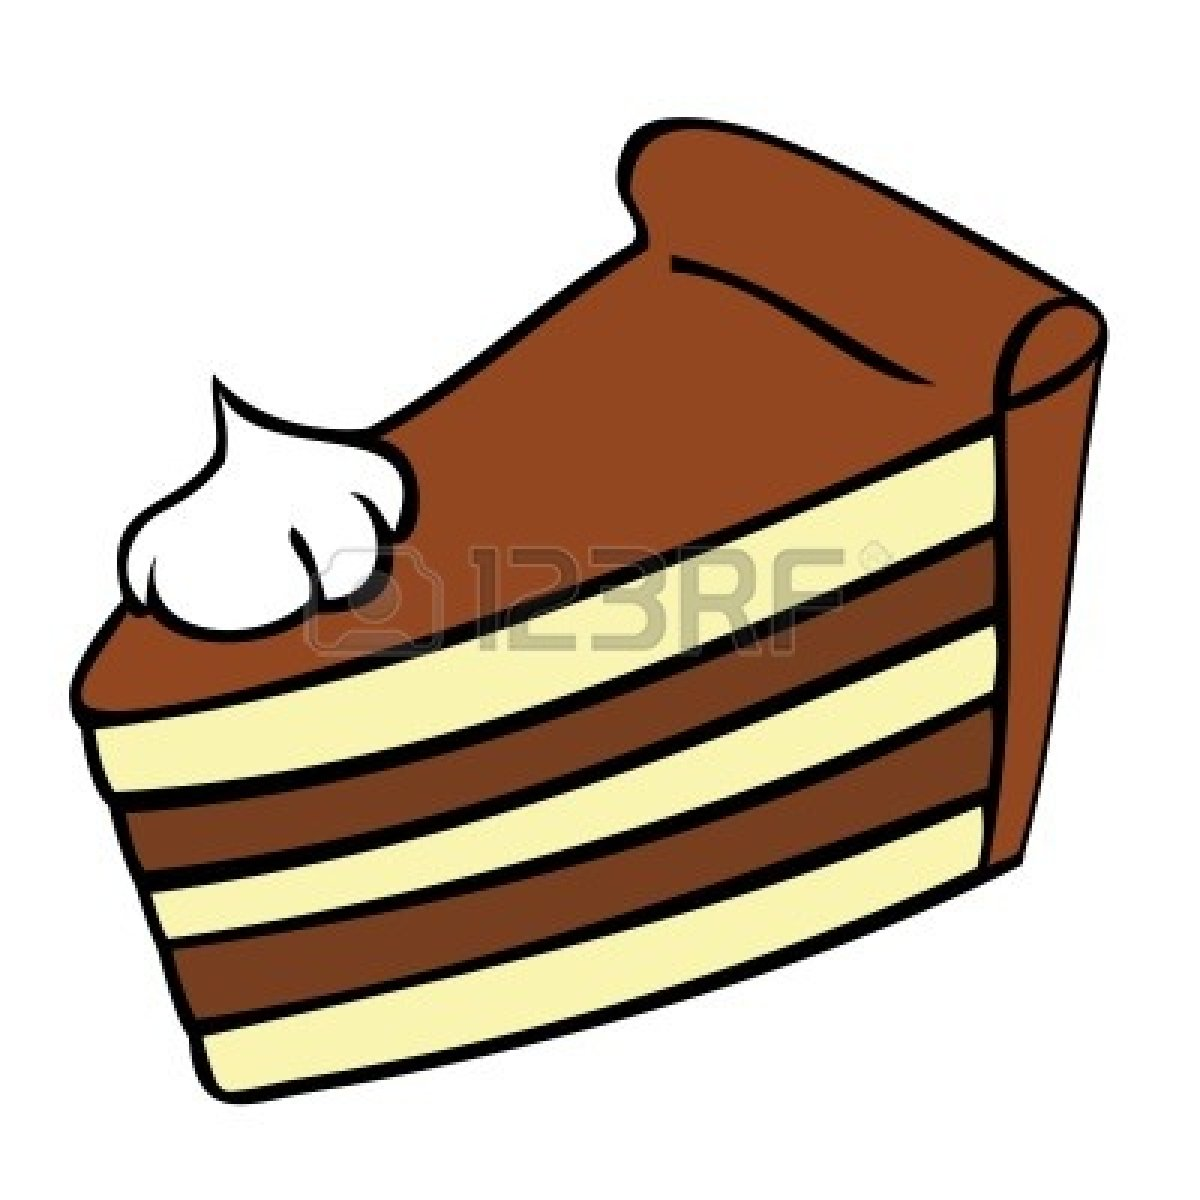 Pice clipart cake Chocolate Images Clipart Clipart Cake